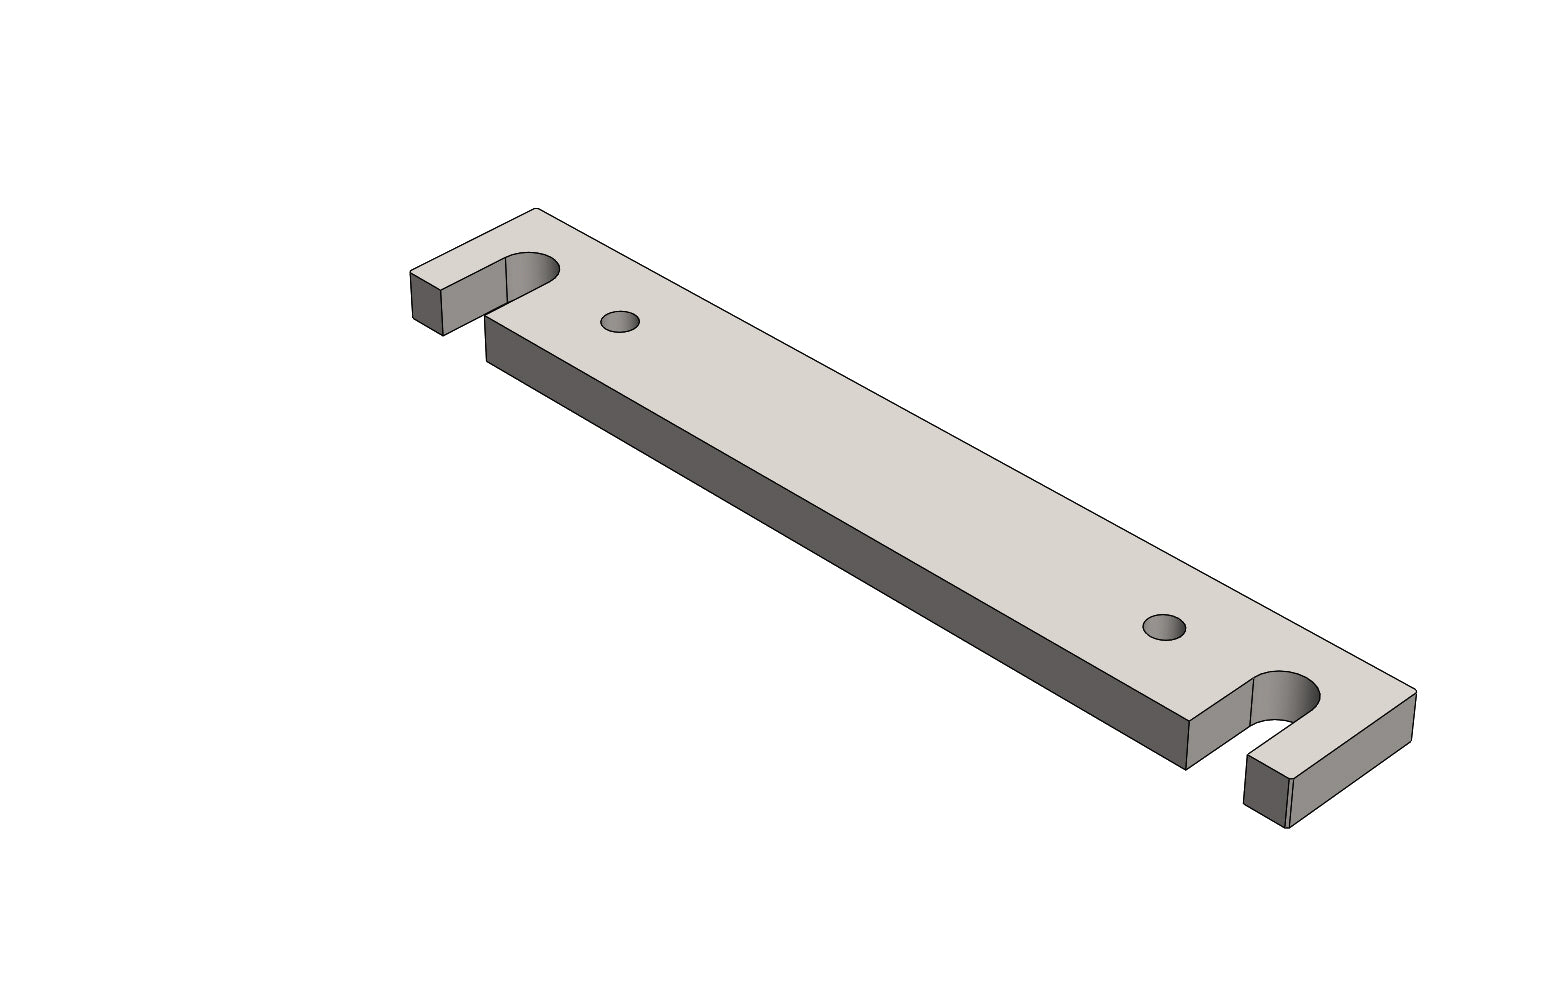 TC6271663A MOUNTING PLATE - King TC8 Spare Part